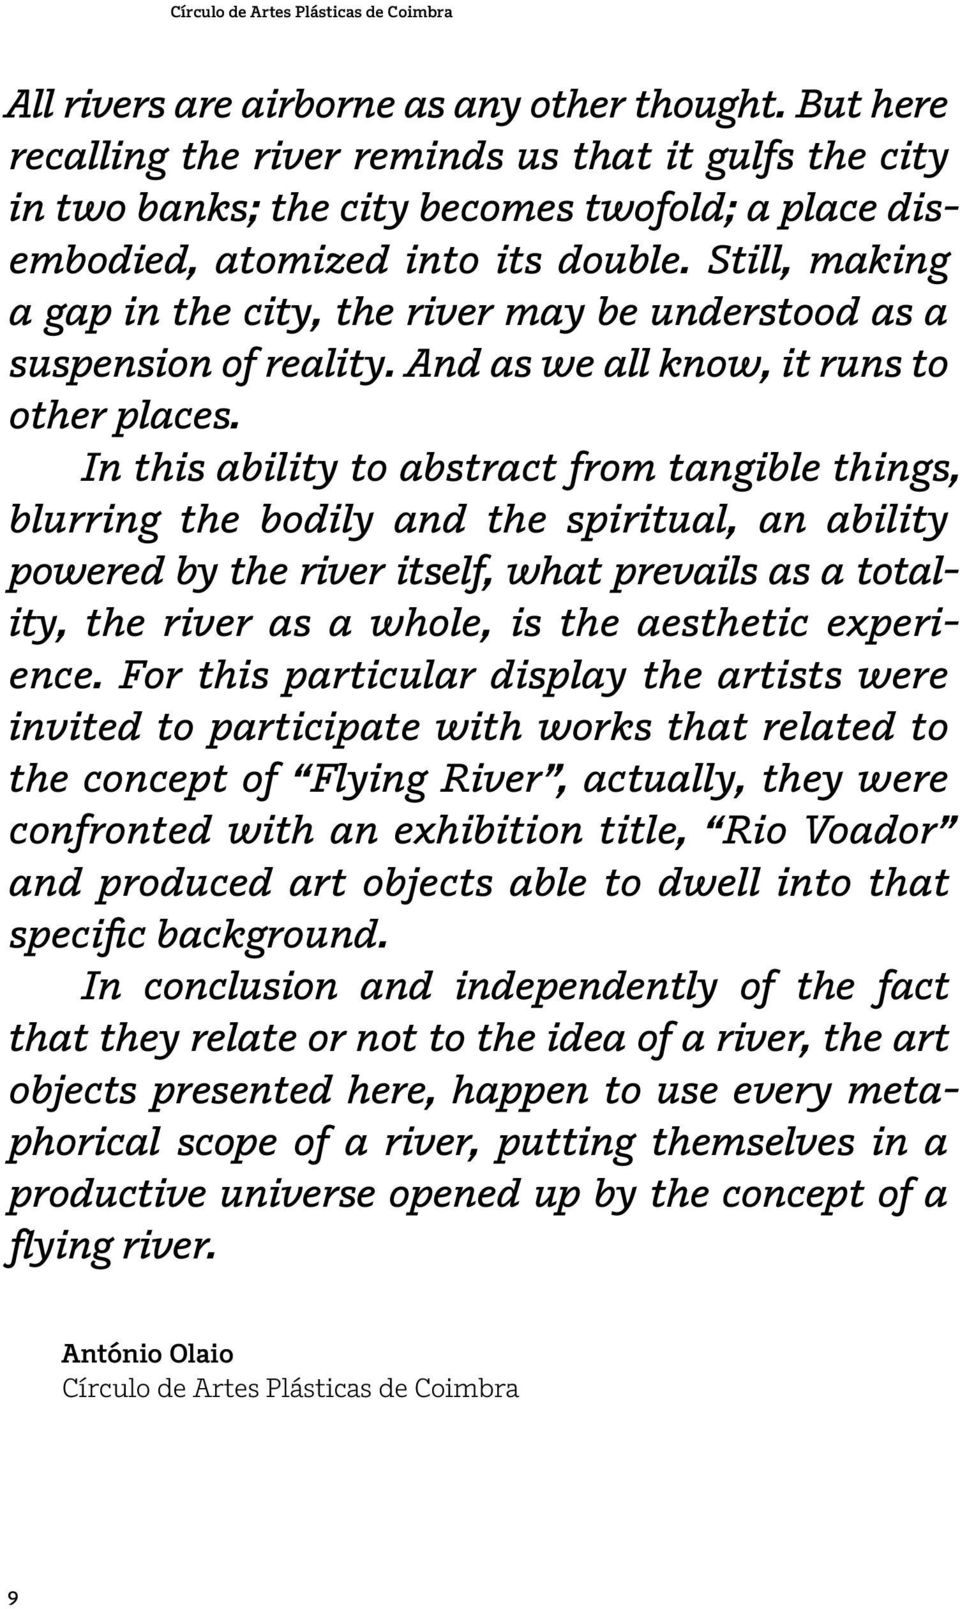 In this ability to abstract from tangible things, blurring the bodily and the spiritual, an ability powered by the river itself, what prevails as a totality, the river as a whole, is the aesthetic